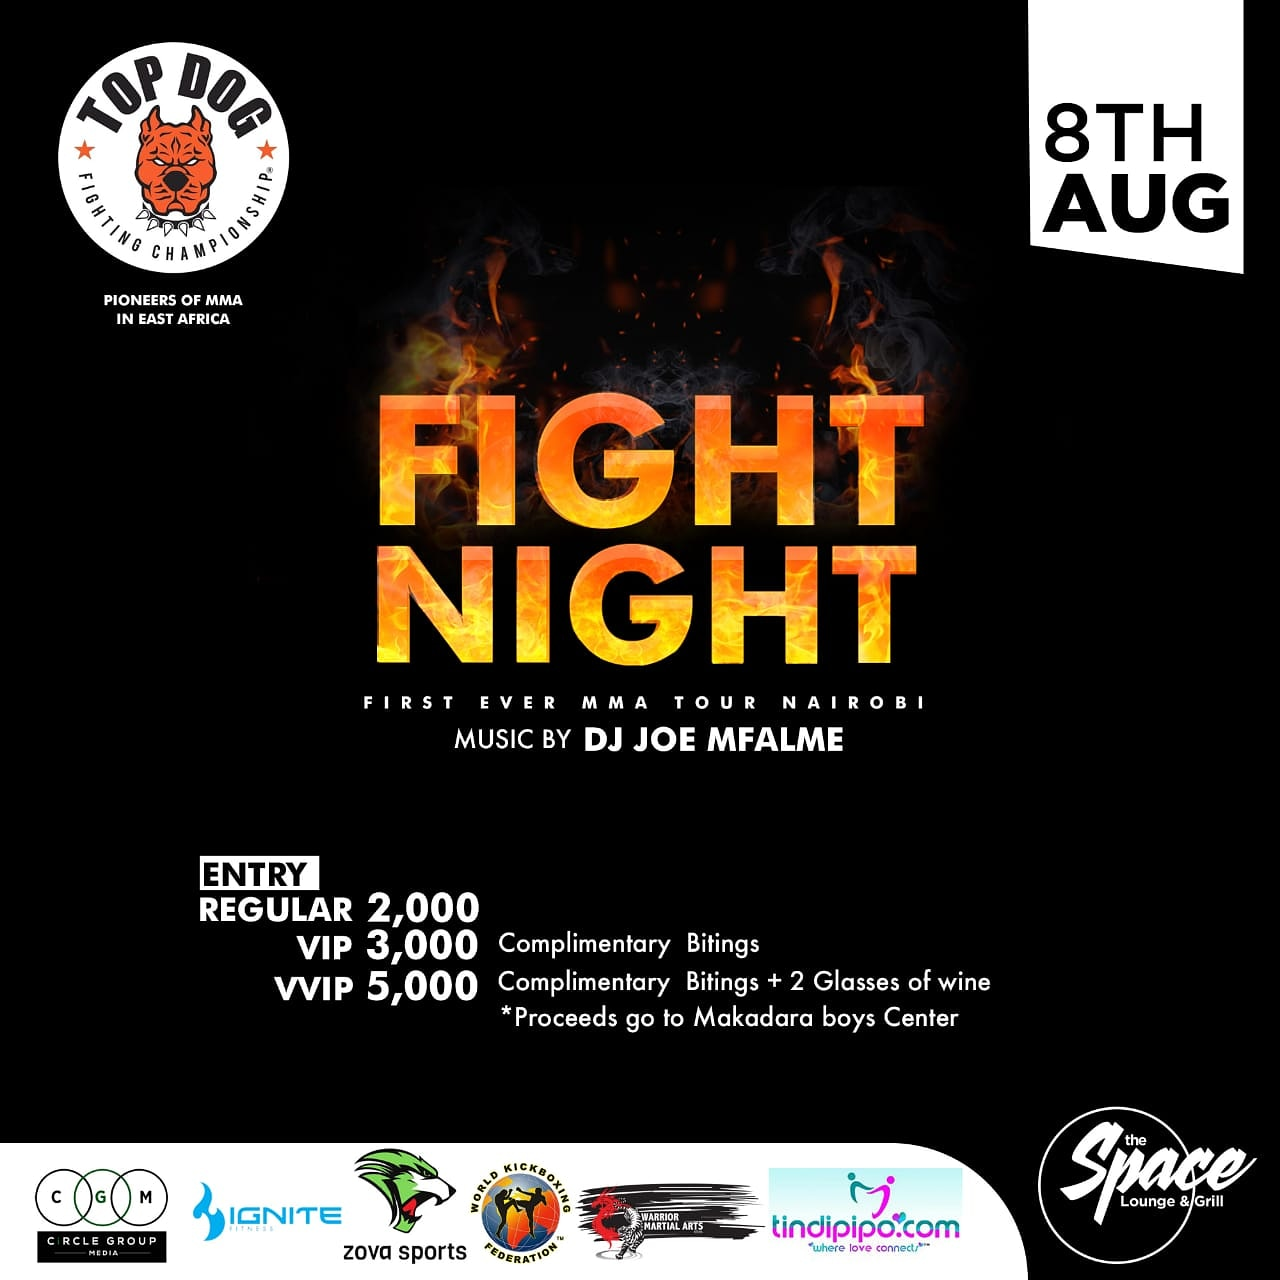 The First Ever MMA Event in East Africa - On Saturday August 8th